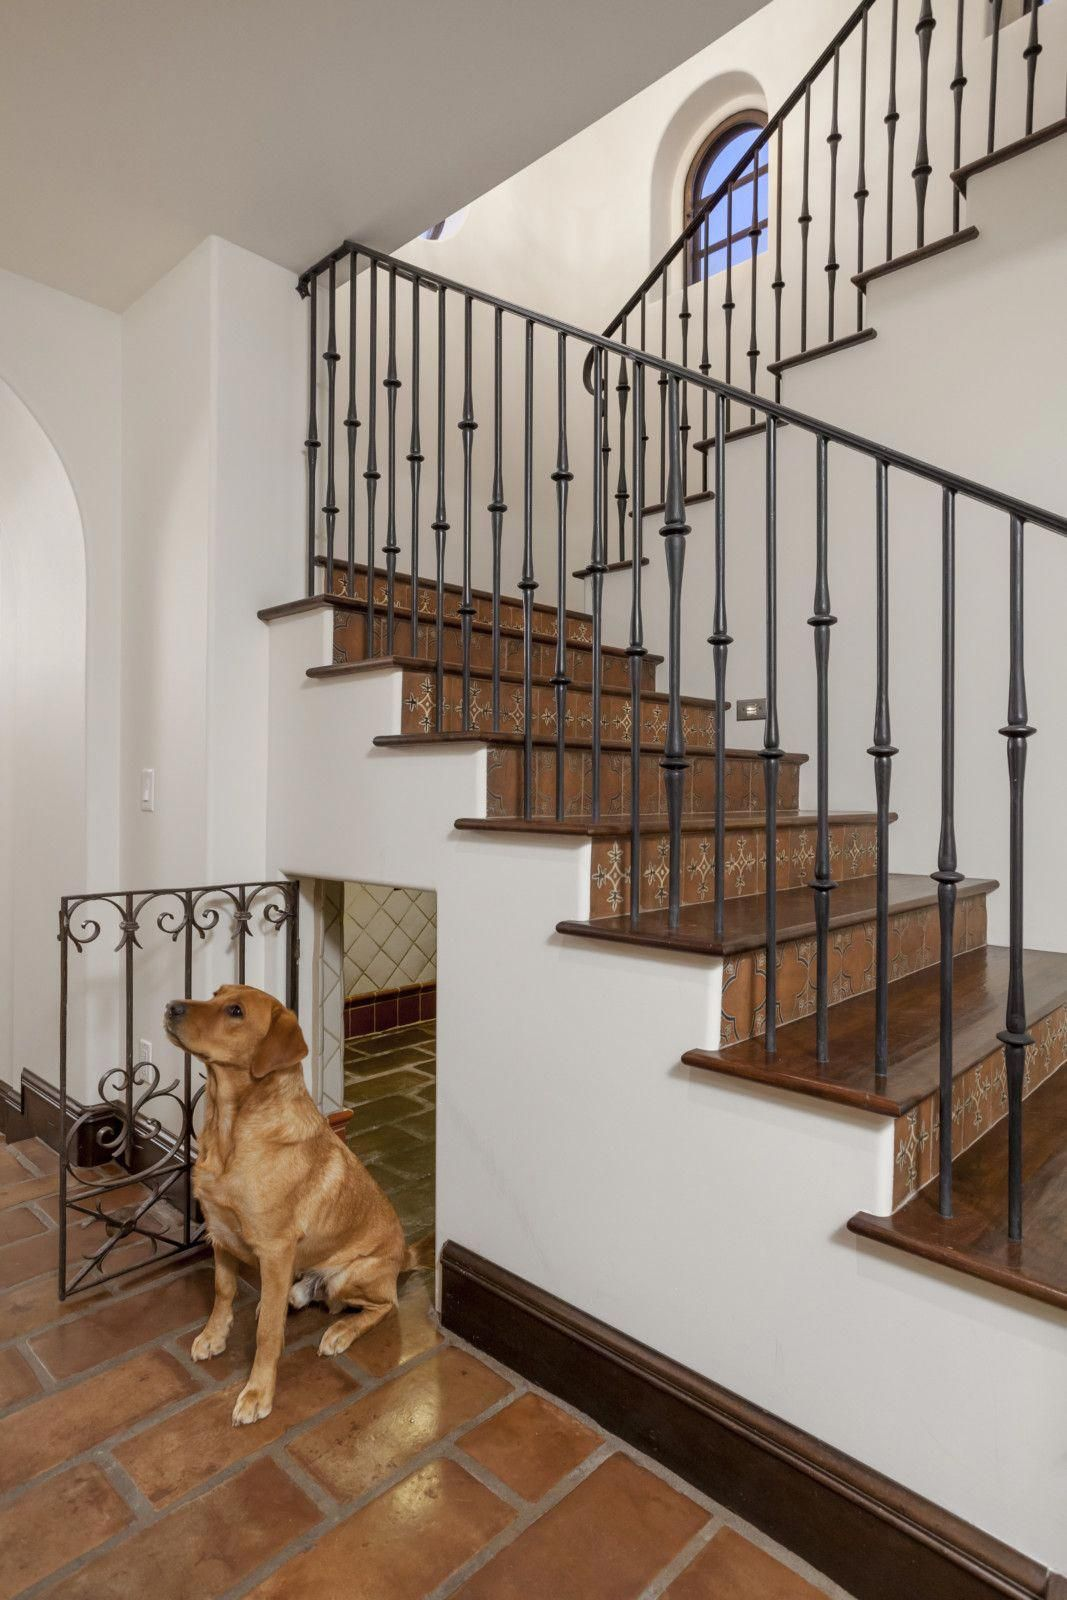 This 8 Million (Dog)House Could Be Yours Under stairs